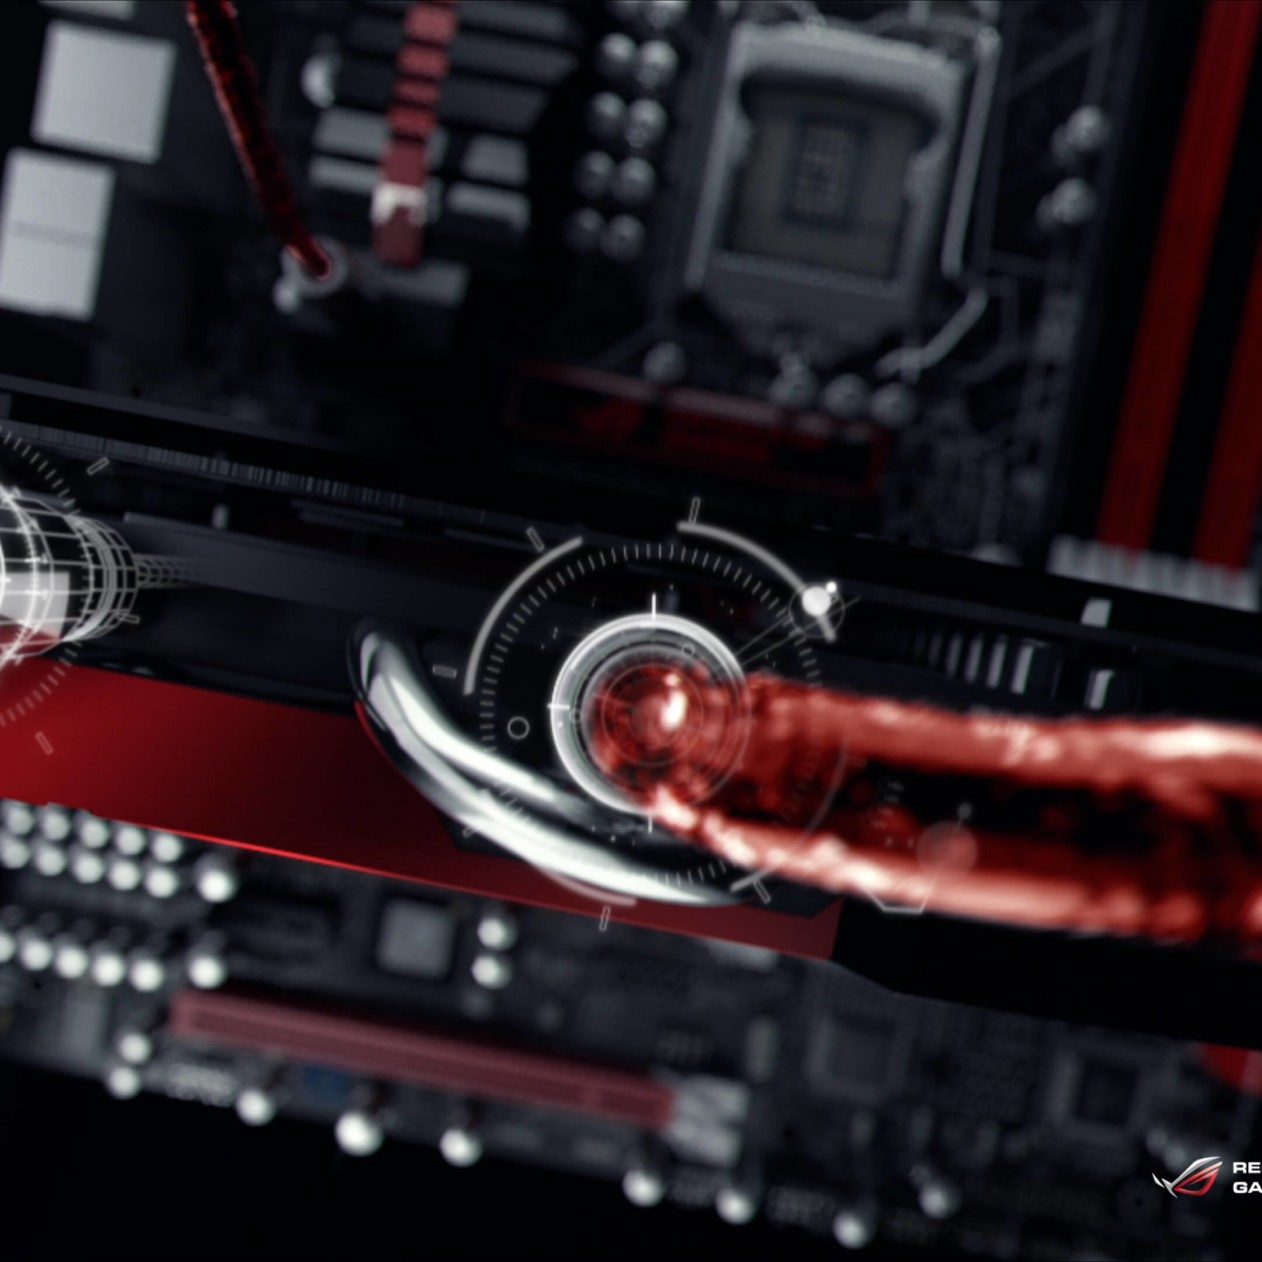 ASUS ROG Poseidon Liquid Cooling Wallpaper for Apple iPad mini